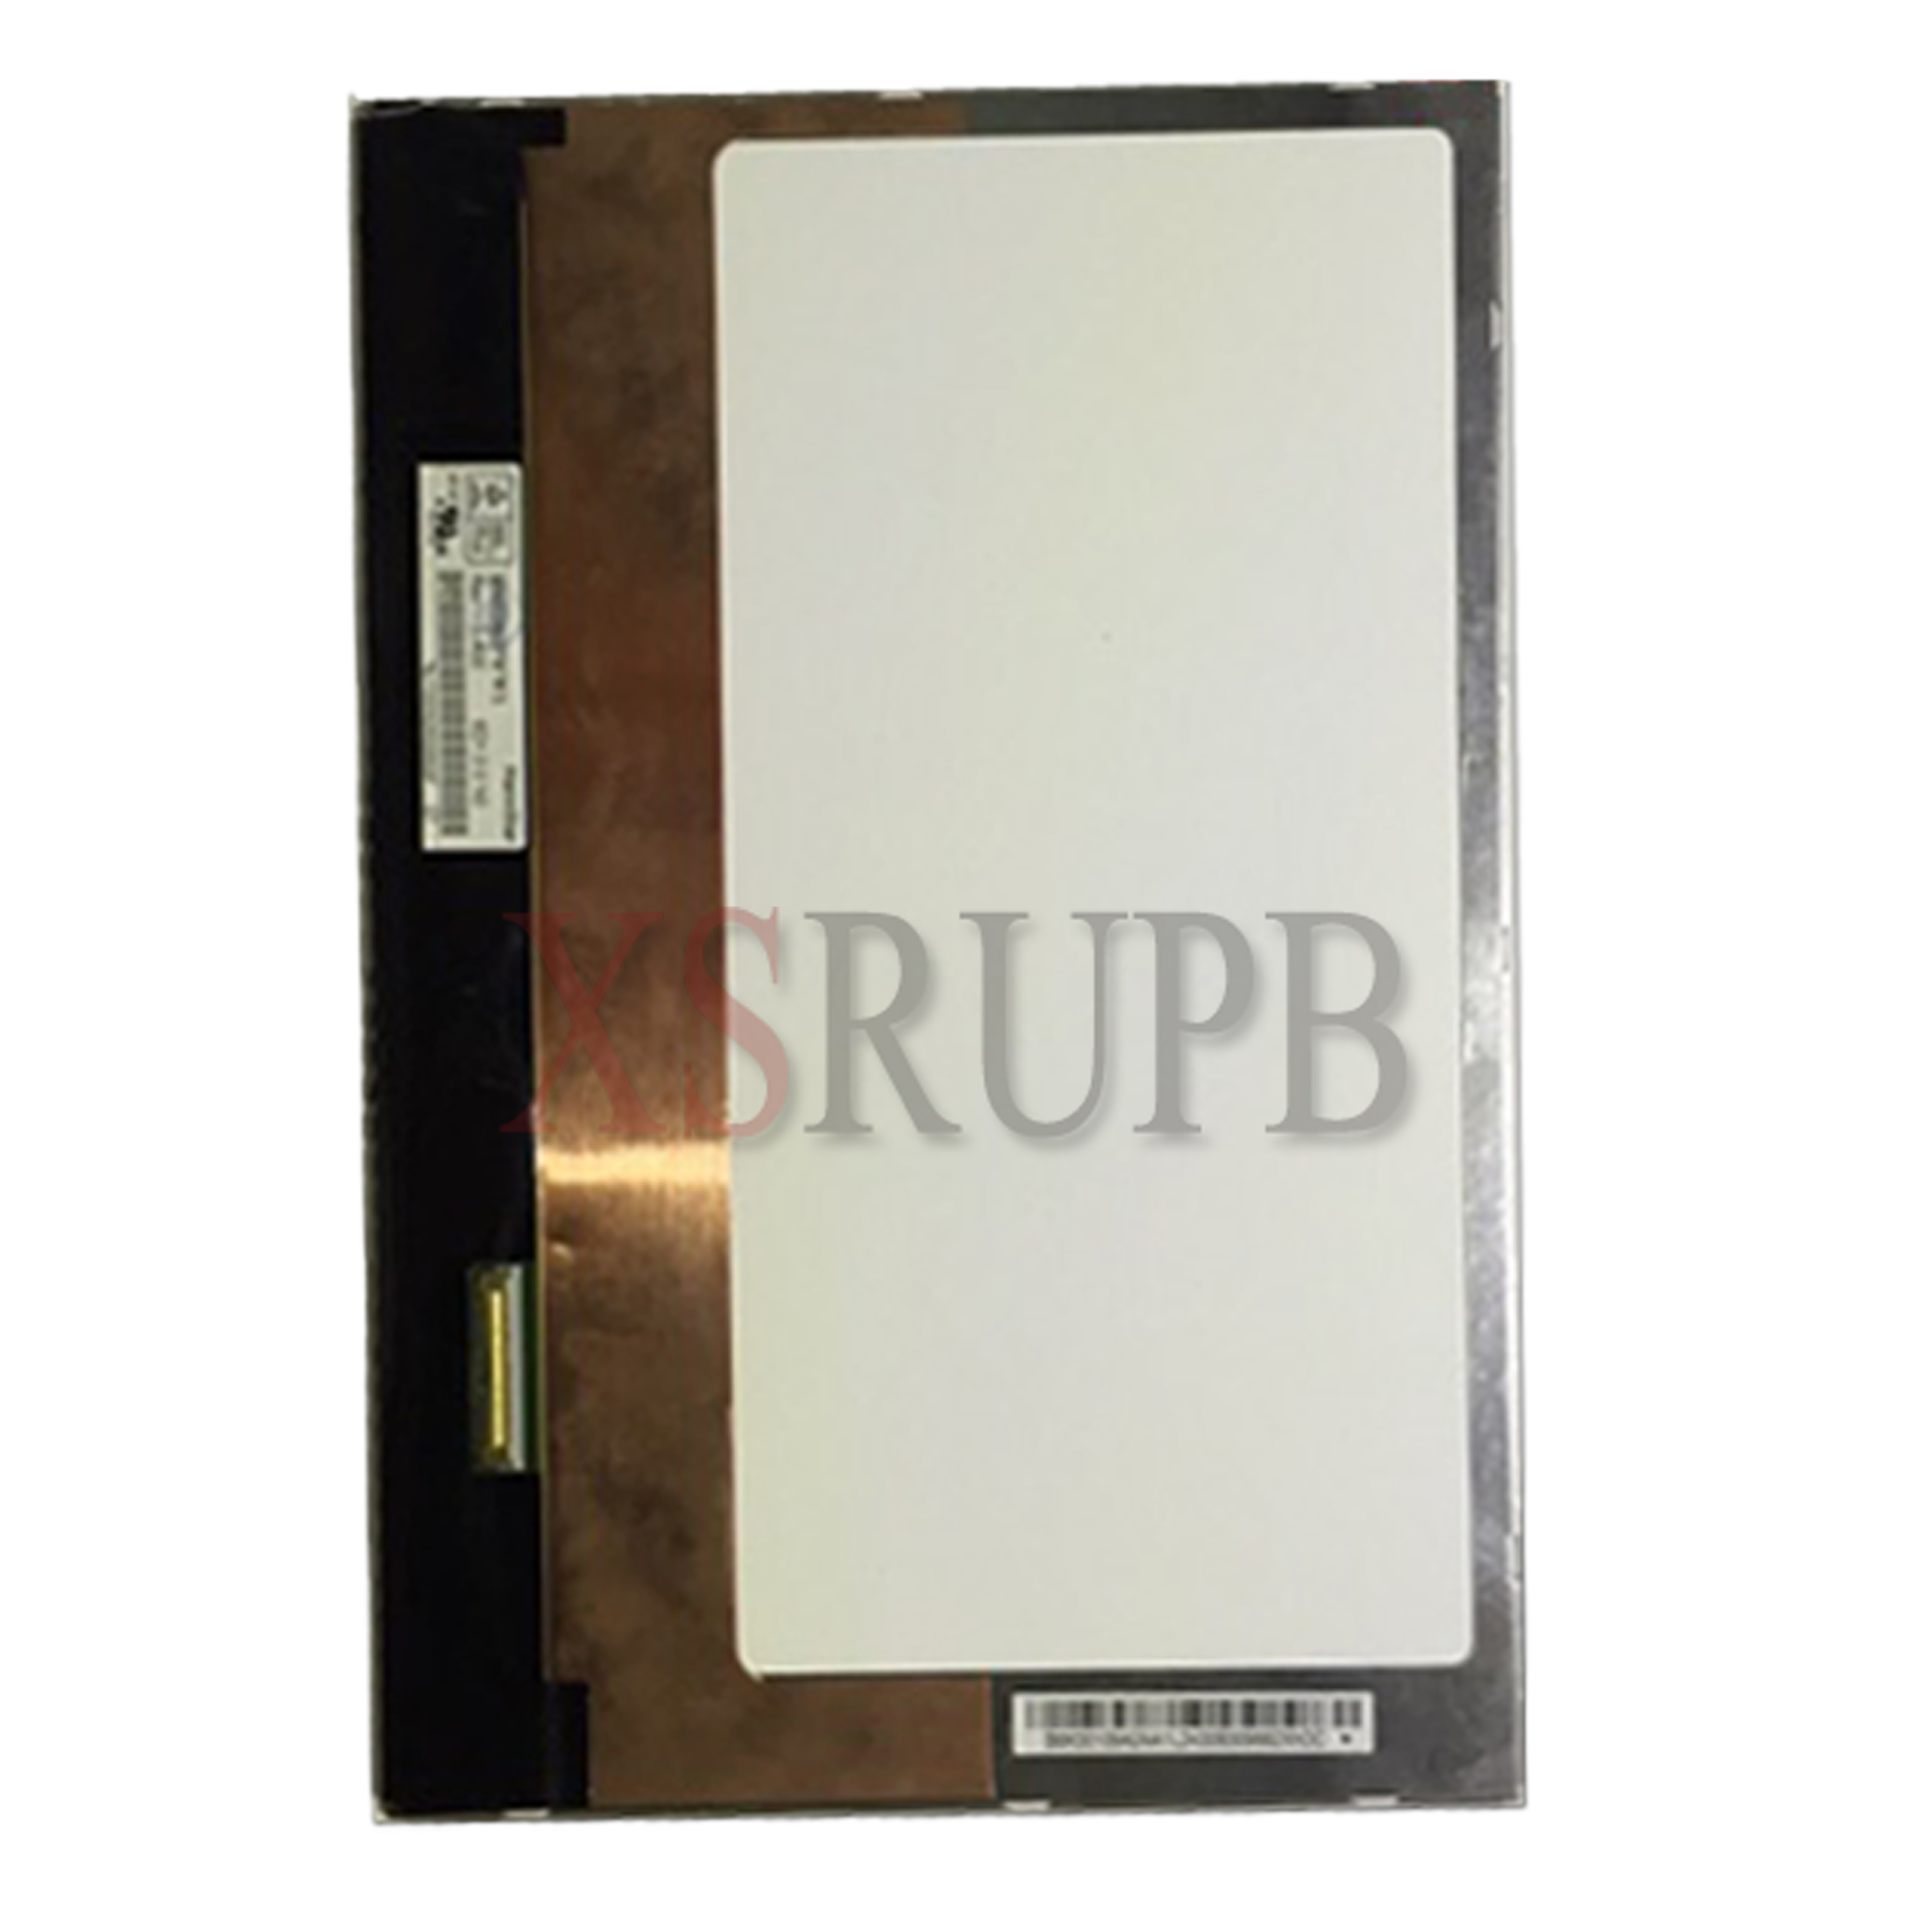 For ASUS EeePad Transformer TF300T TF300 LCD Display Screen Panel Repair Part Fix Replacement 100% Good Working laptop lcd assembly for asus taichi 31 lcd screen display touch digitizer replacement repair panel fix part